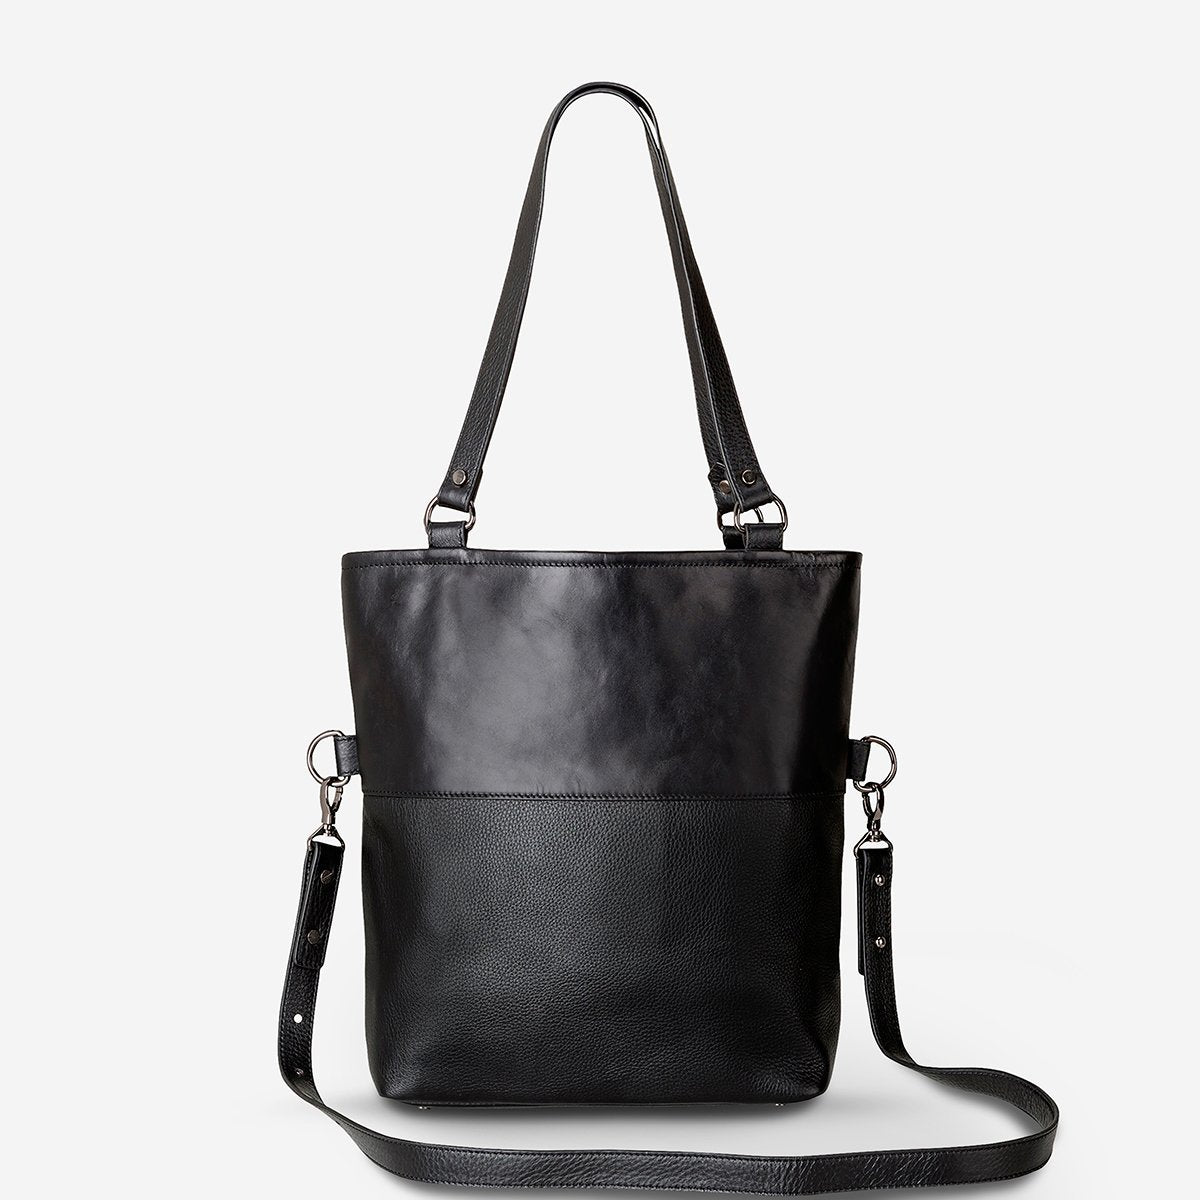 Status Anxiety Wasteland Women's Large Leather Tote Bag - Black